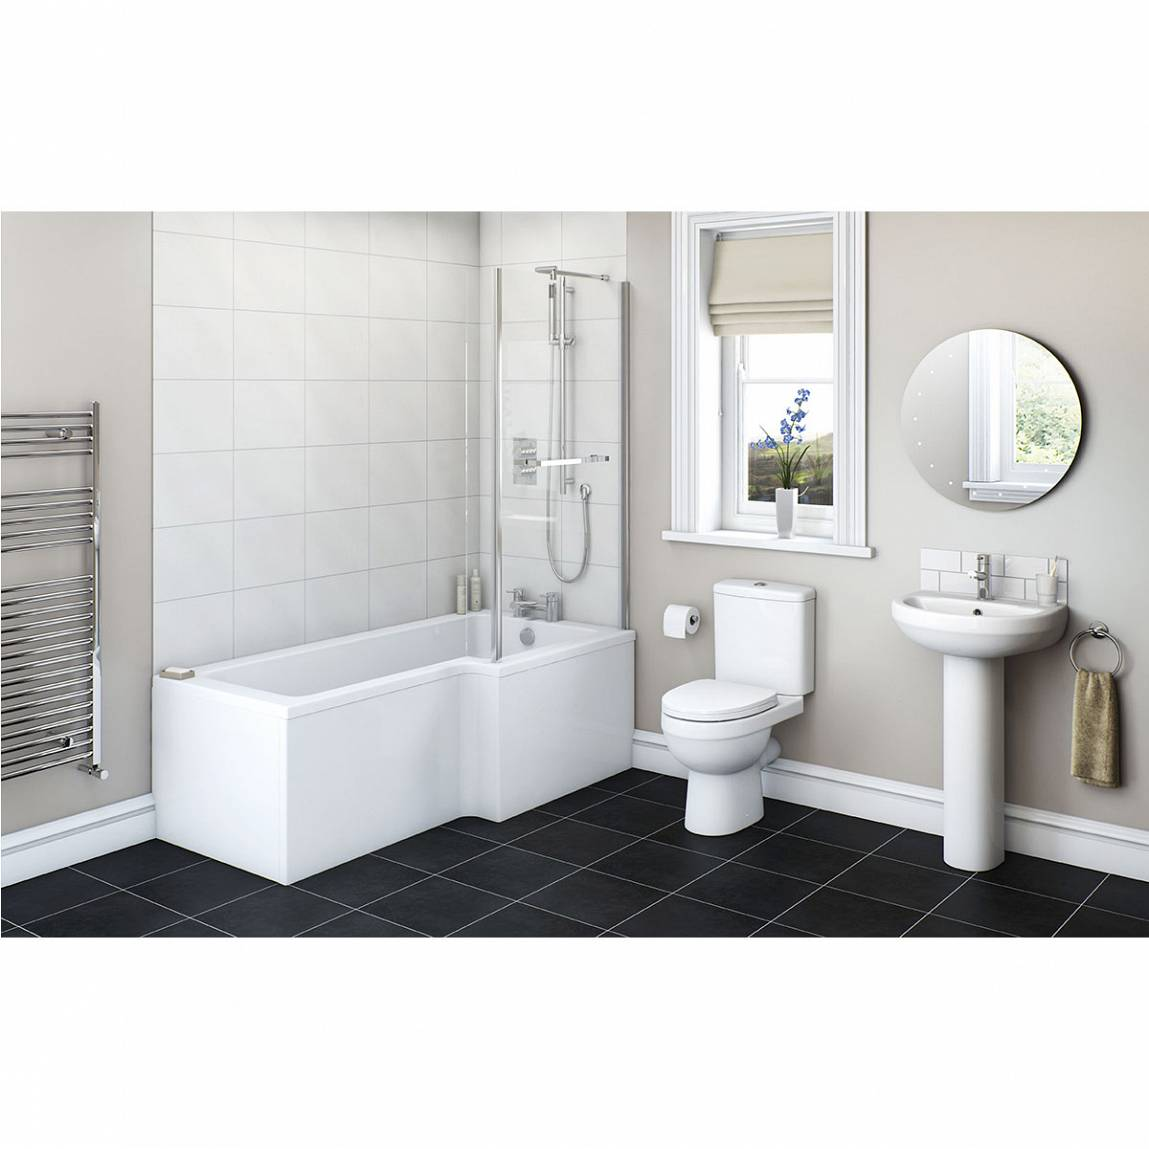 Image of Energy Bathroom Suite with Boston 1700 x 850 Shower Bath RH